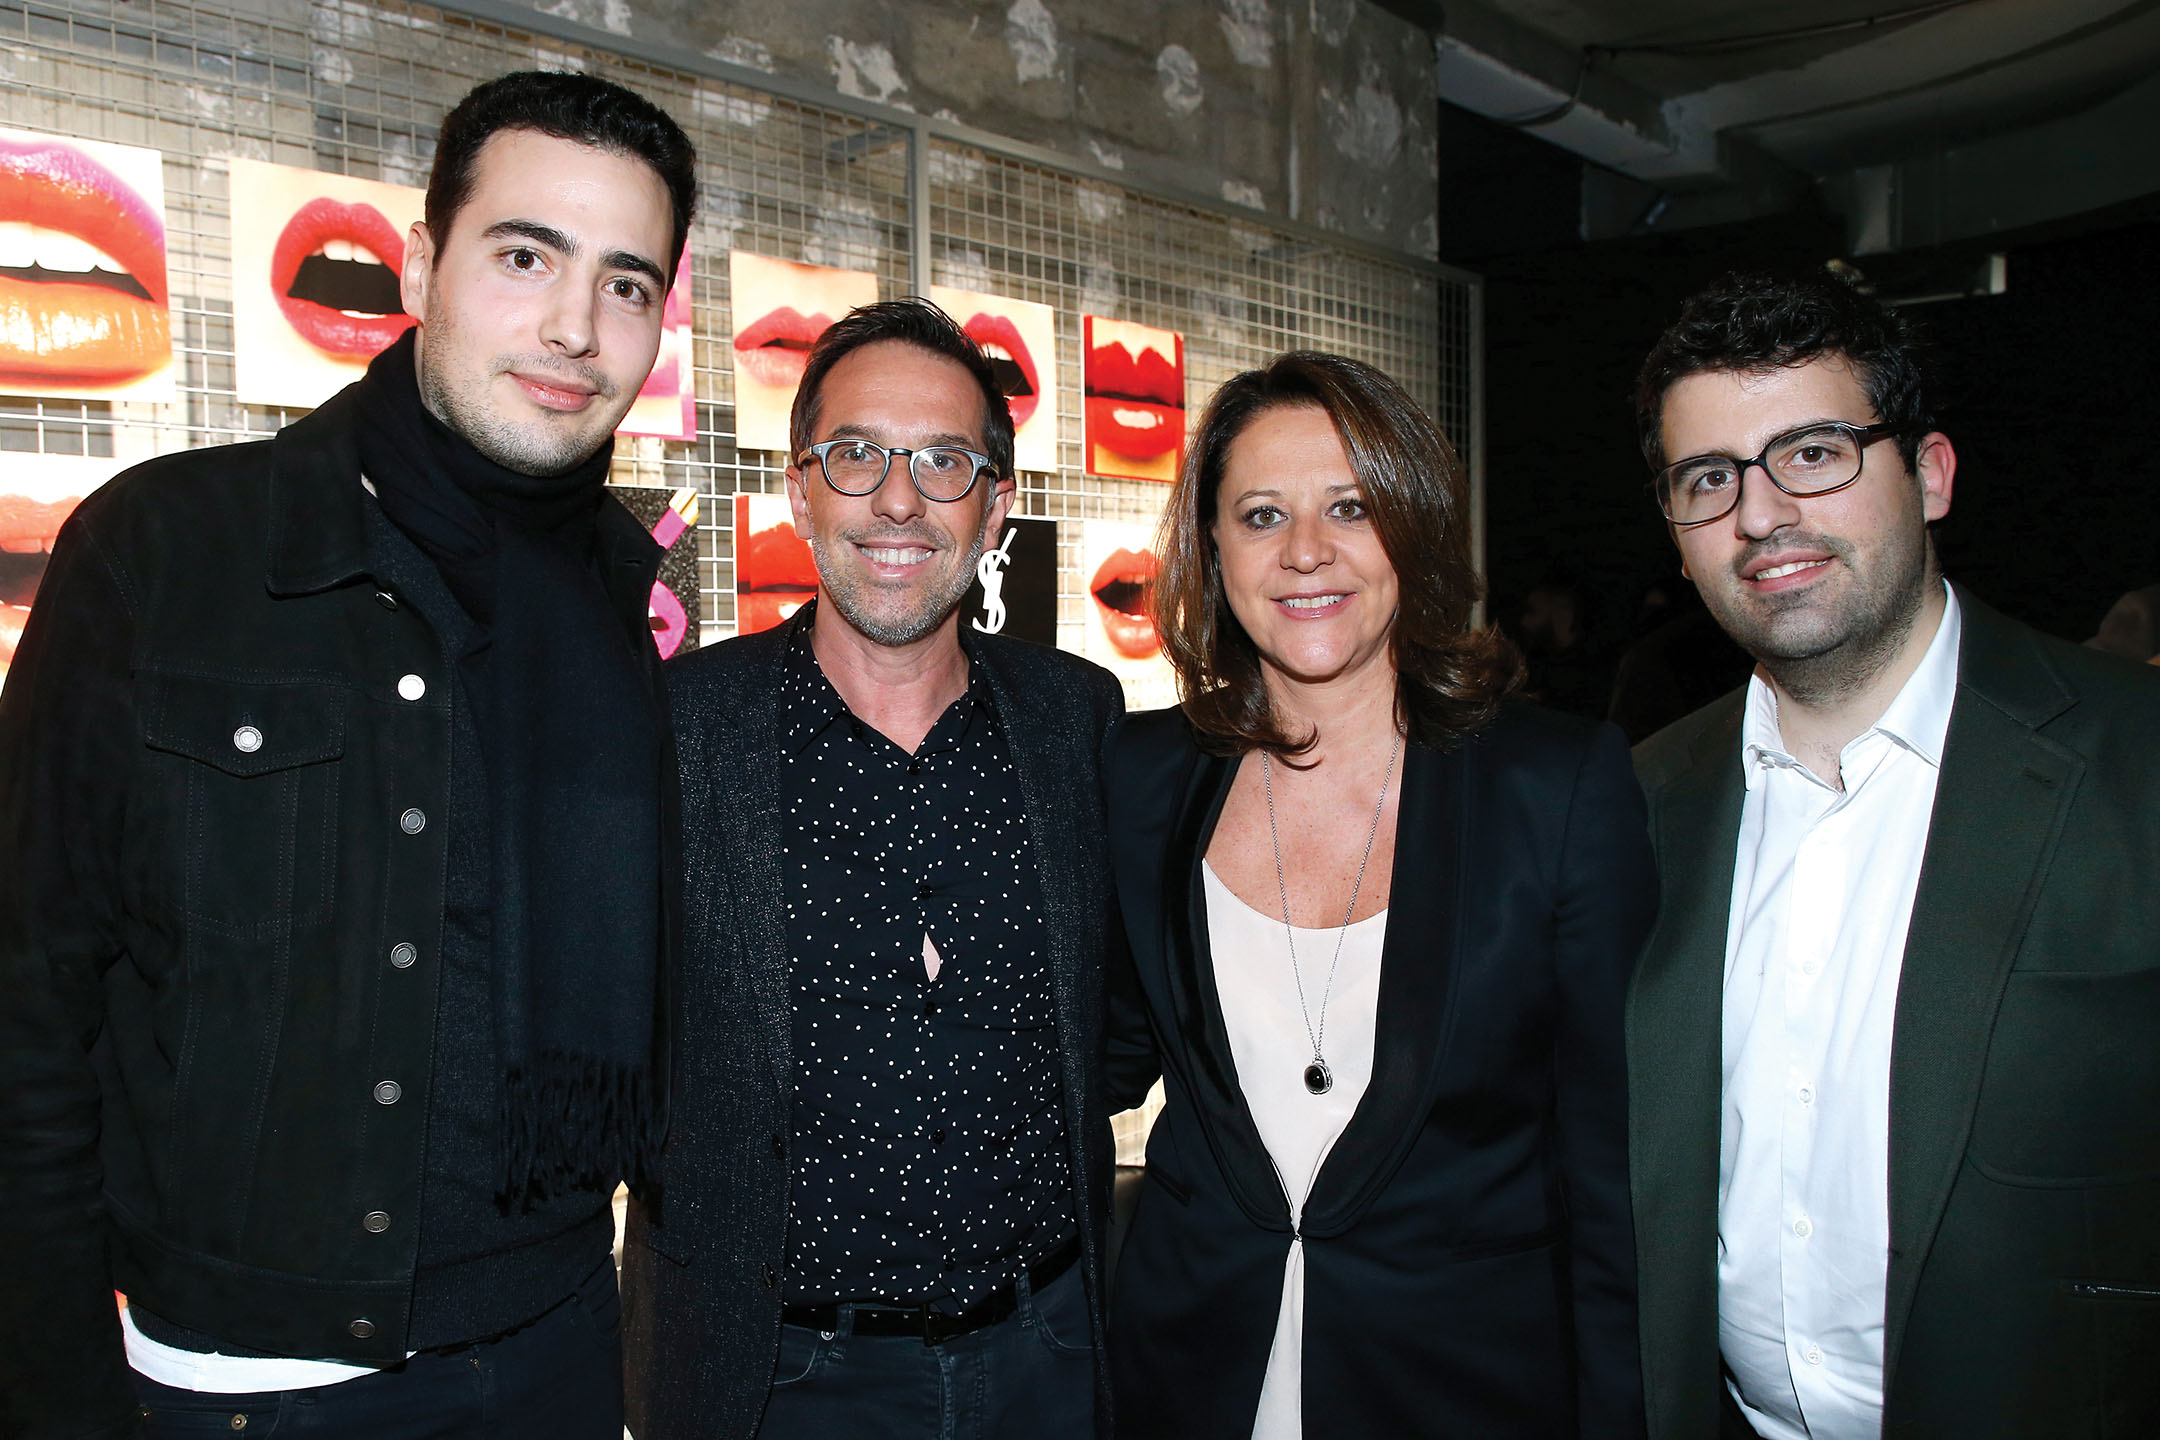 With Jean-Victor Meyers, his wife Géraldine Hieronimus and Nicolas Meyers at an Yves Saint Laurent event in 2018.